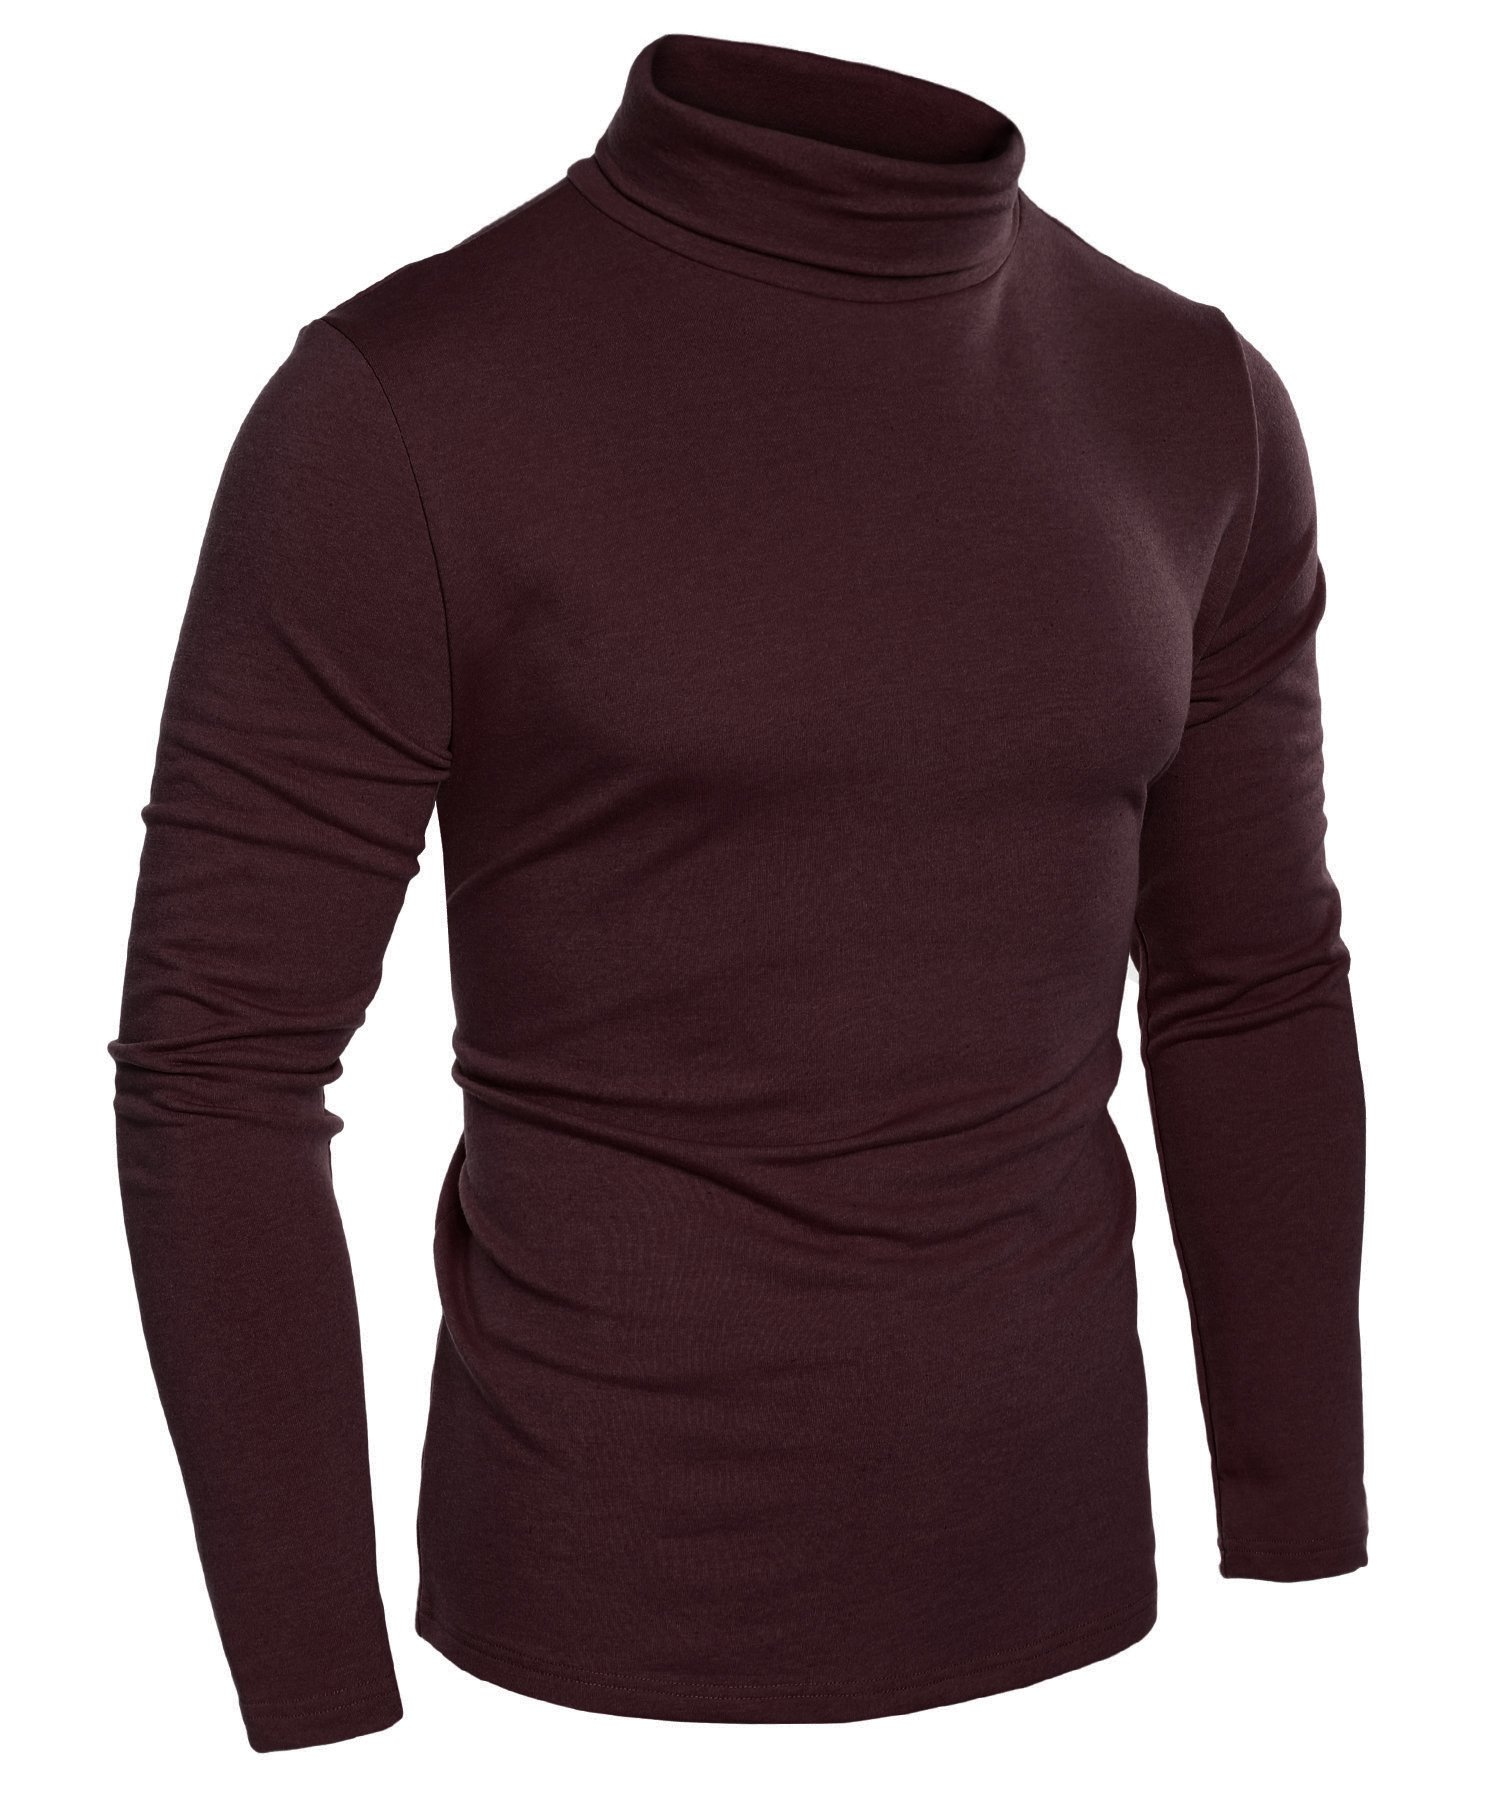 Simbama Mens Casual Basic Thermal Turtleneck Slim Fit Pullover Thermal Sweaters